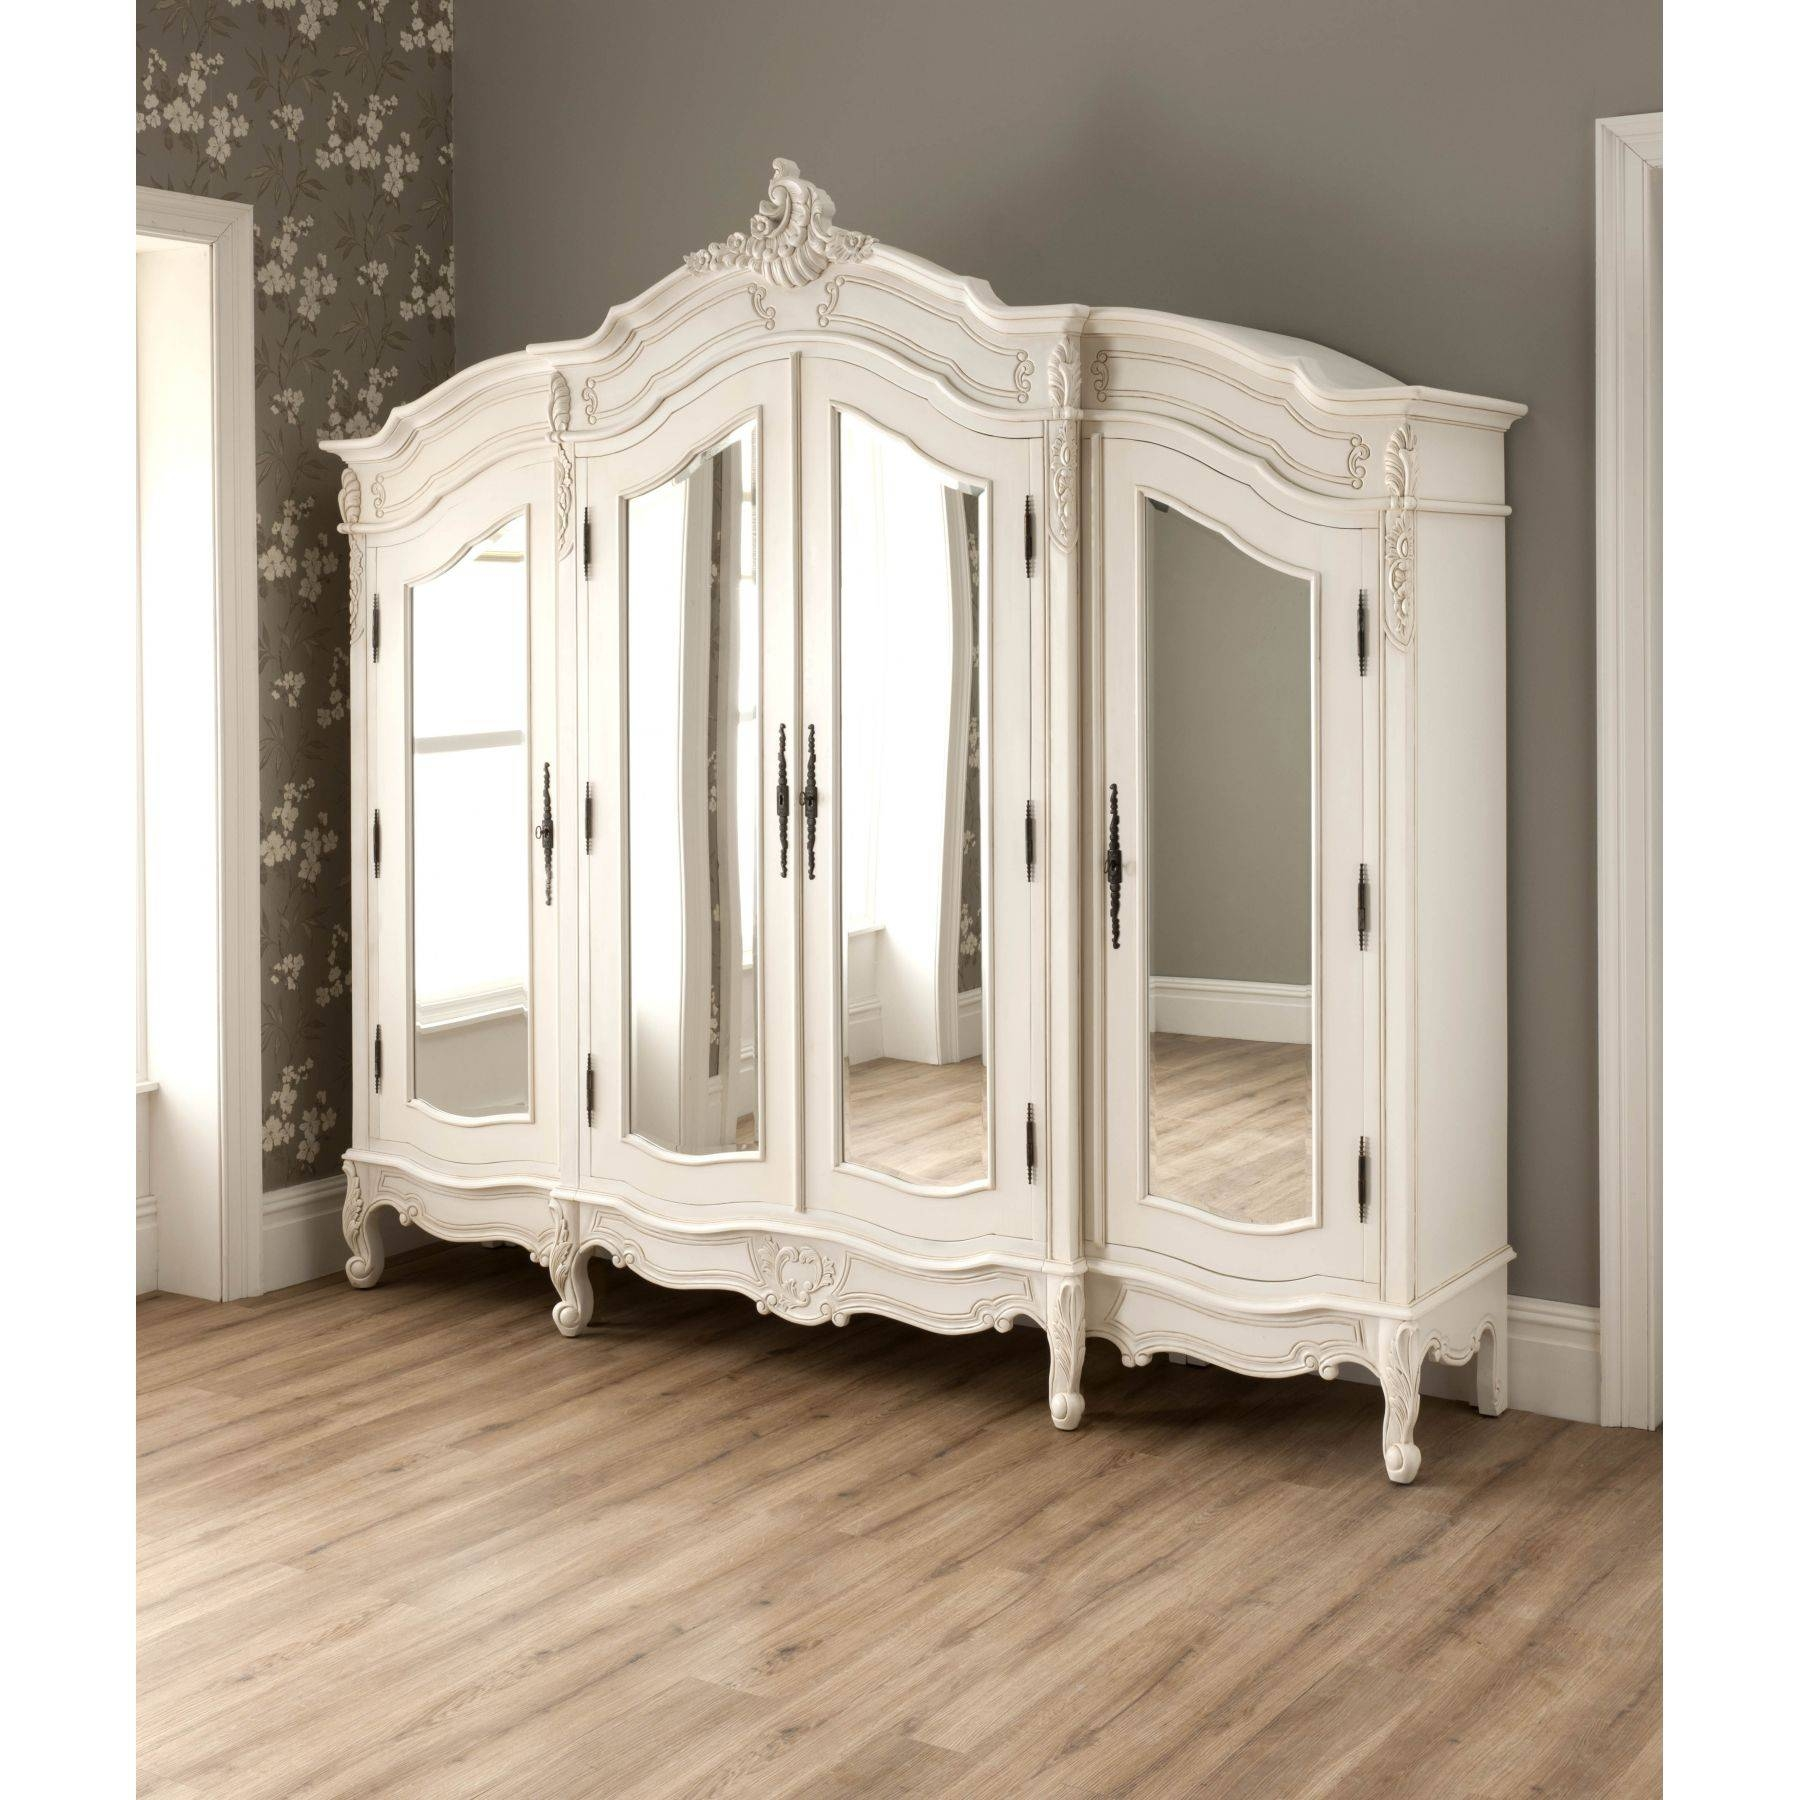 La Rochelle Antique French Wardrobe | Rococo Furniture | French pertaining to Rococo Wardrobes (Image 5 of 15)